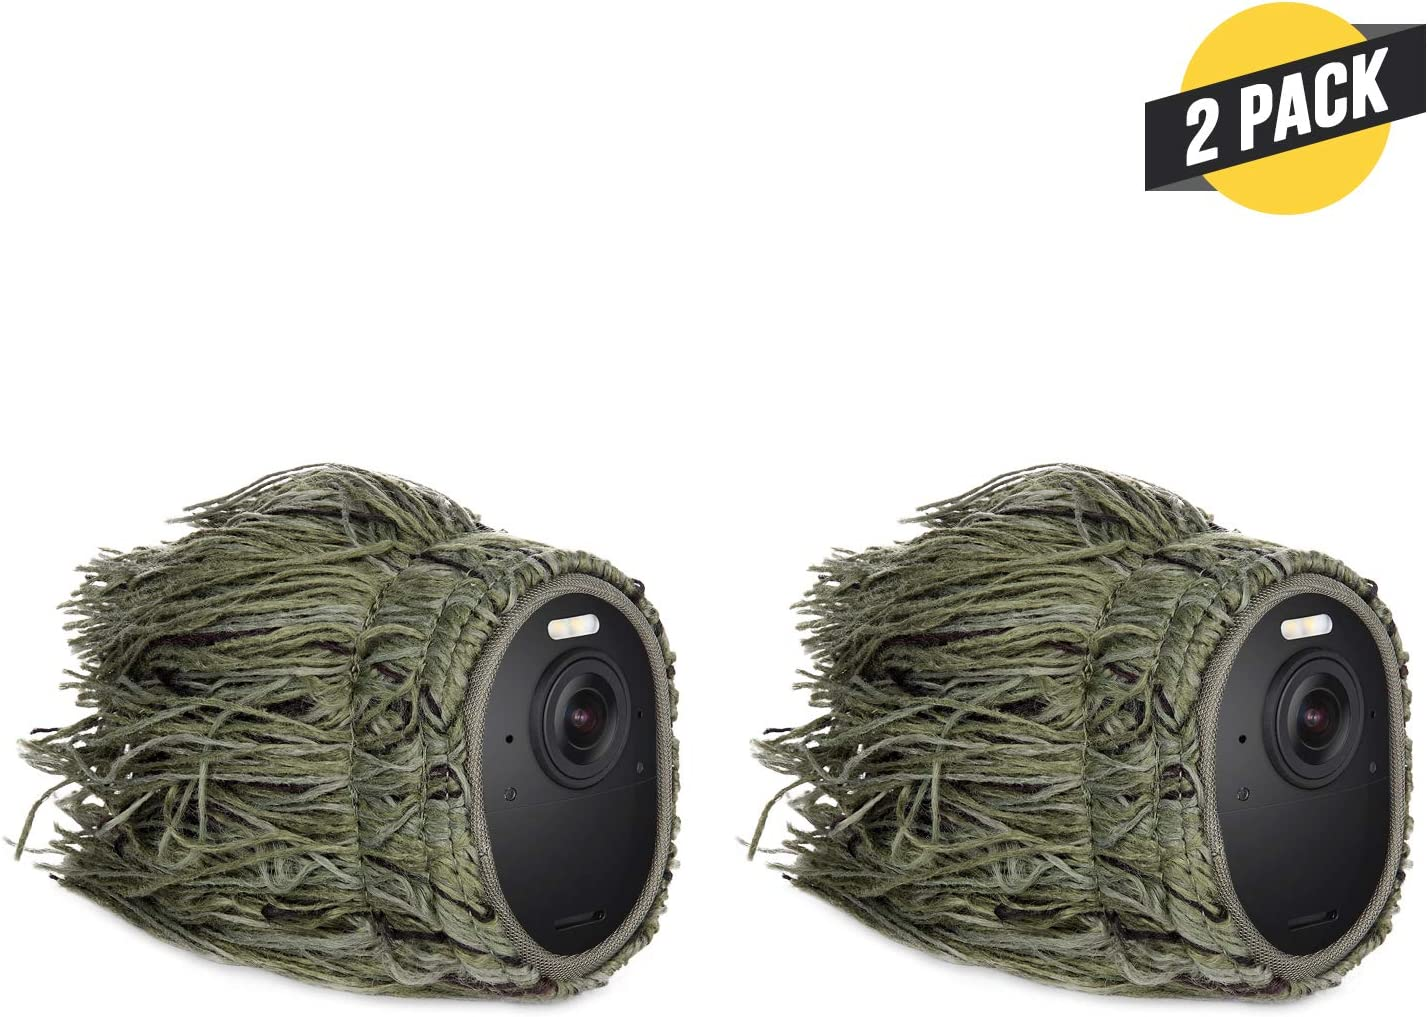 2 Pack Conceal and Protect Your Arlo Camera Ghillie Skin Compatible with Arlo Ultra